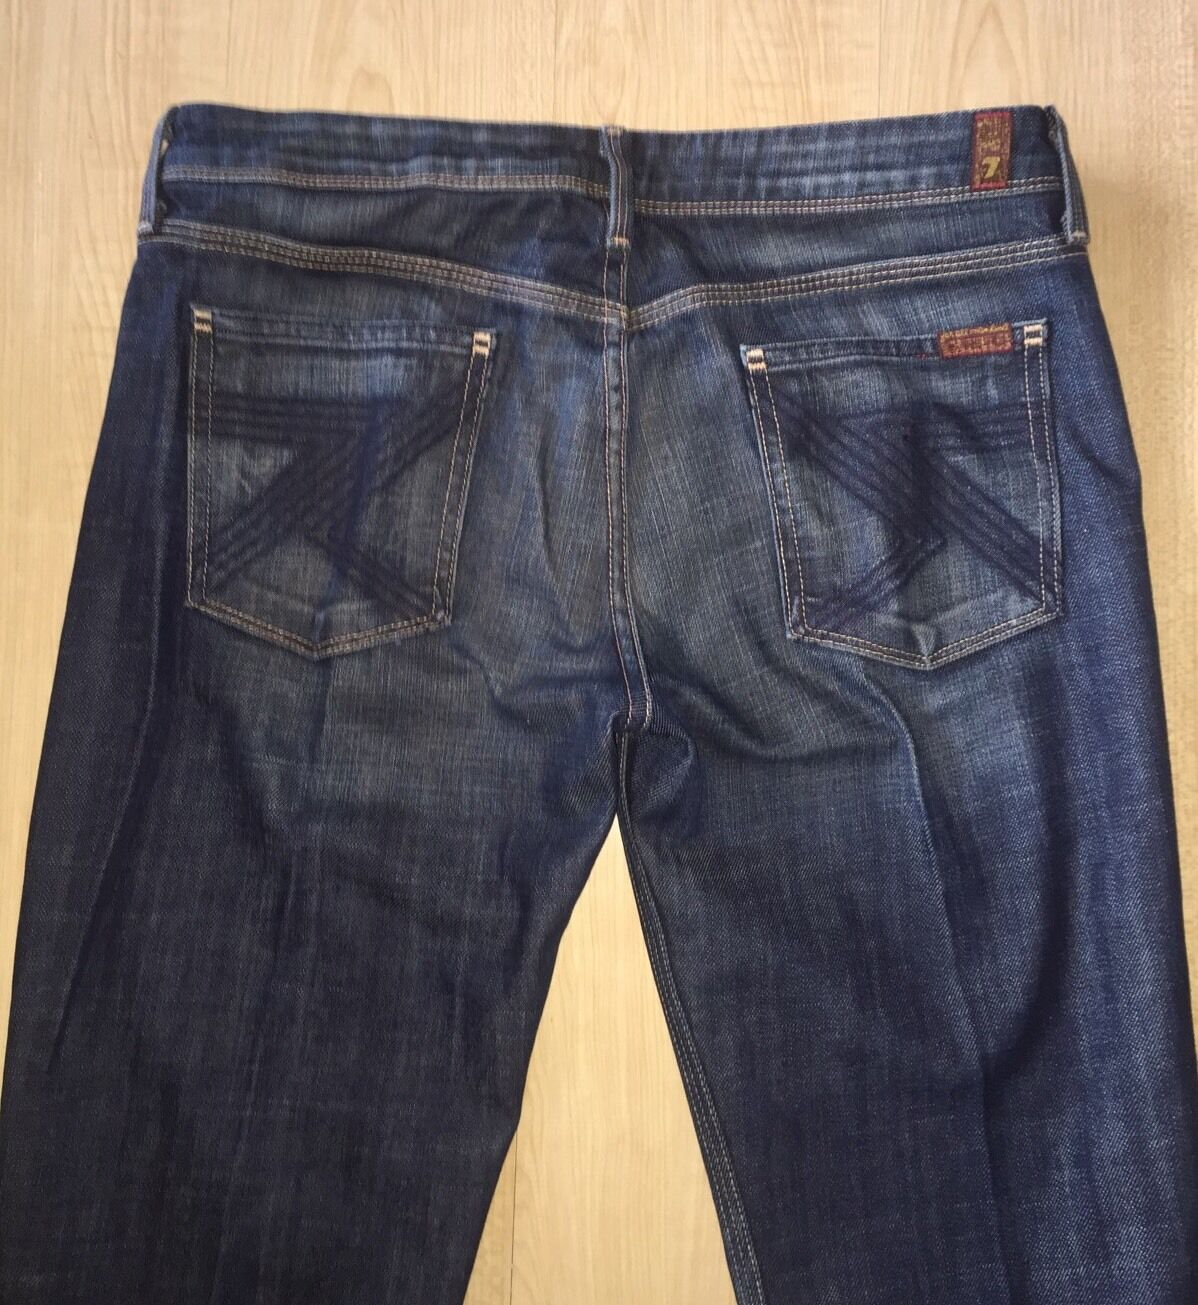 New 7 Seven For All Mankind Flynt Denim bluee Jeans, Size 29